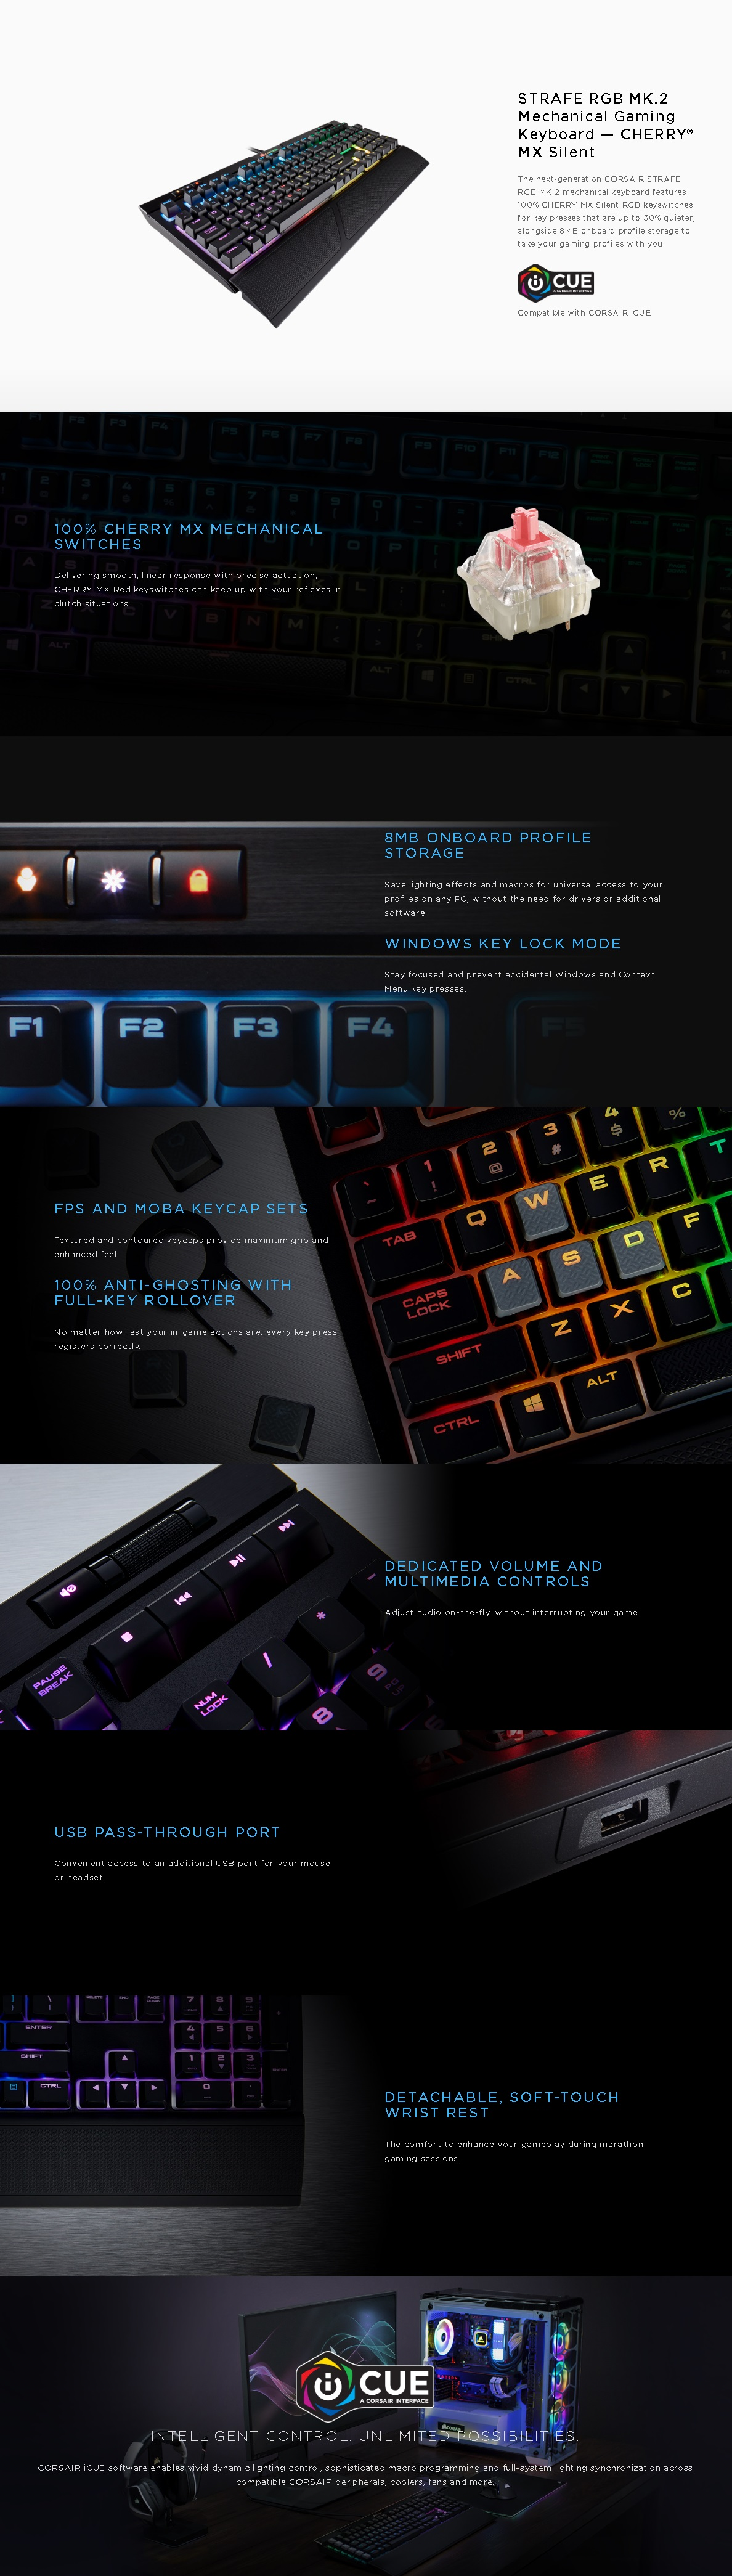 Corsair STRAFE RGB MK 2 Cherry MX Silent Mechanical Gaming Keyboard